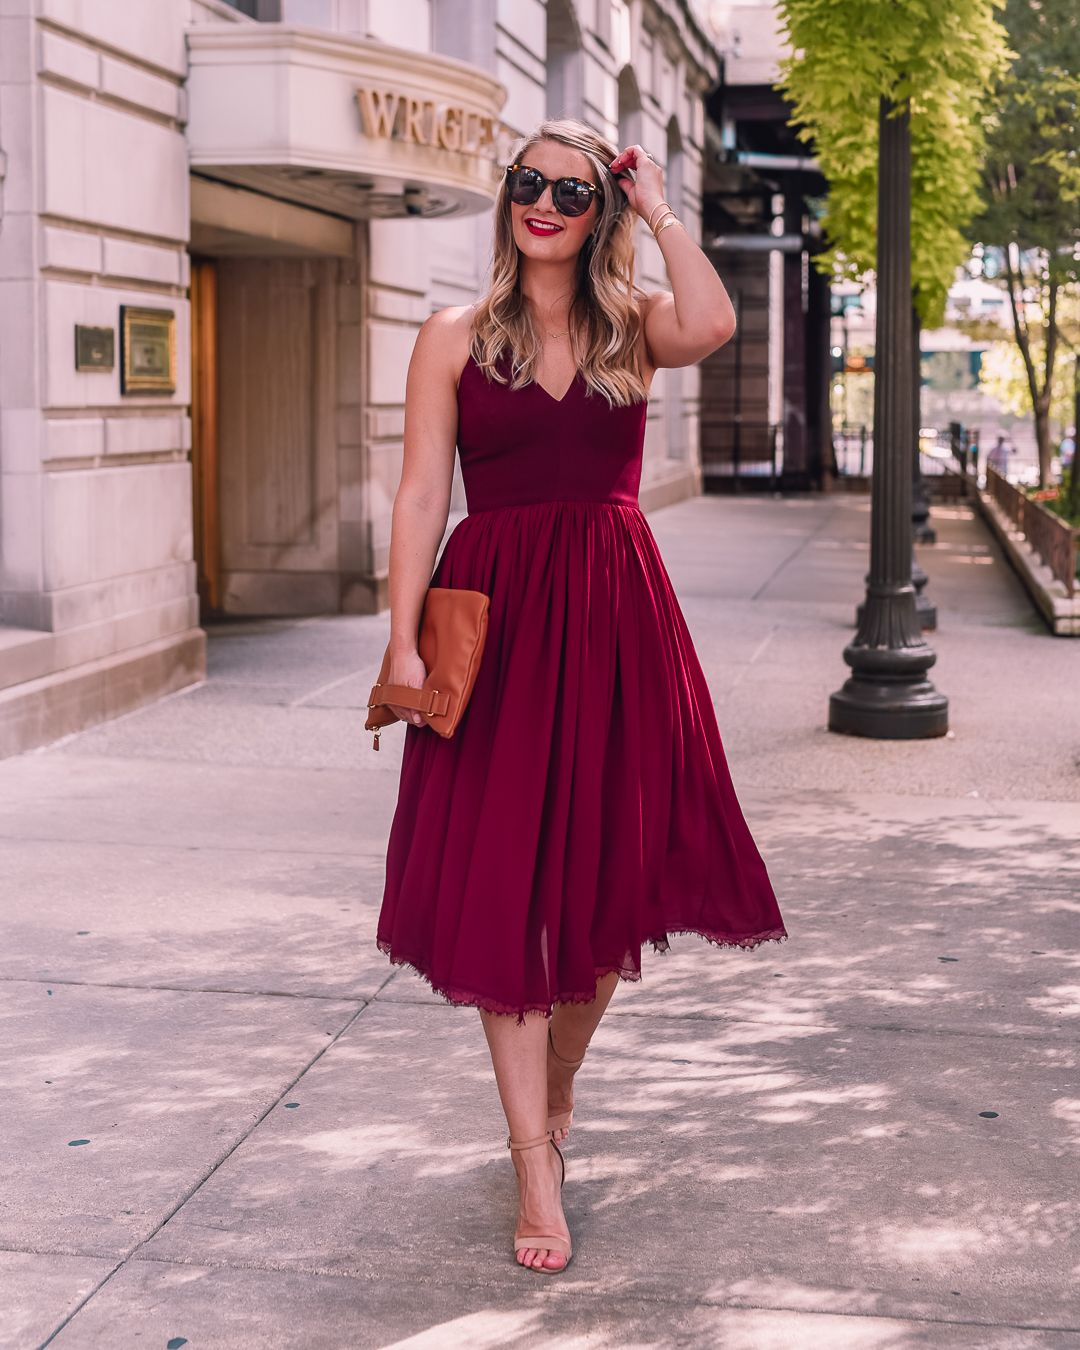 The Best Fall Wedding Guest Dresses Visions Of Vogue Fall Wedding Guest Dress Wedding Guest Outfit Fall Wedding Guest Dress [ 1350 x 1080 Pixel ]